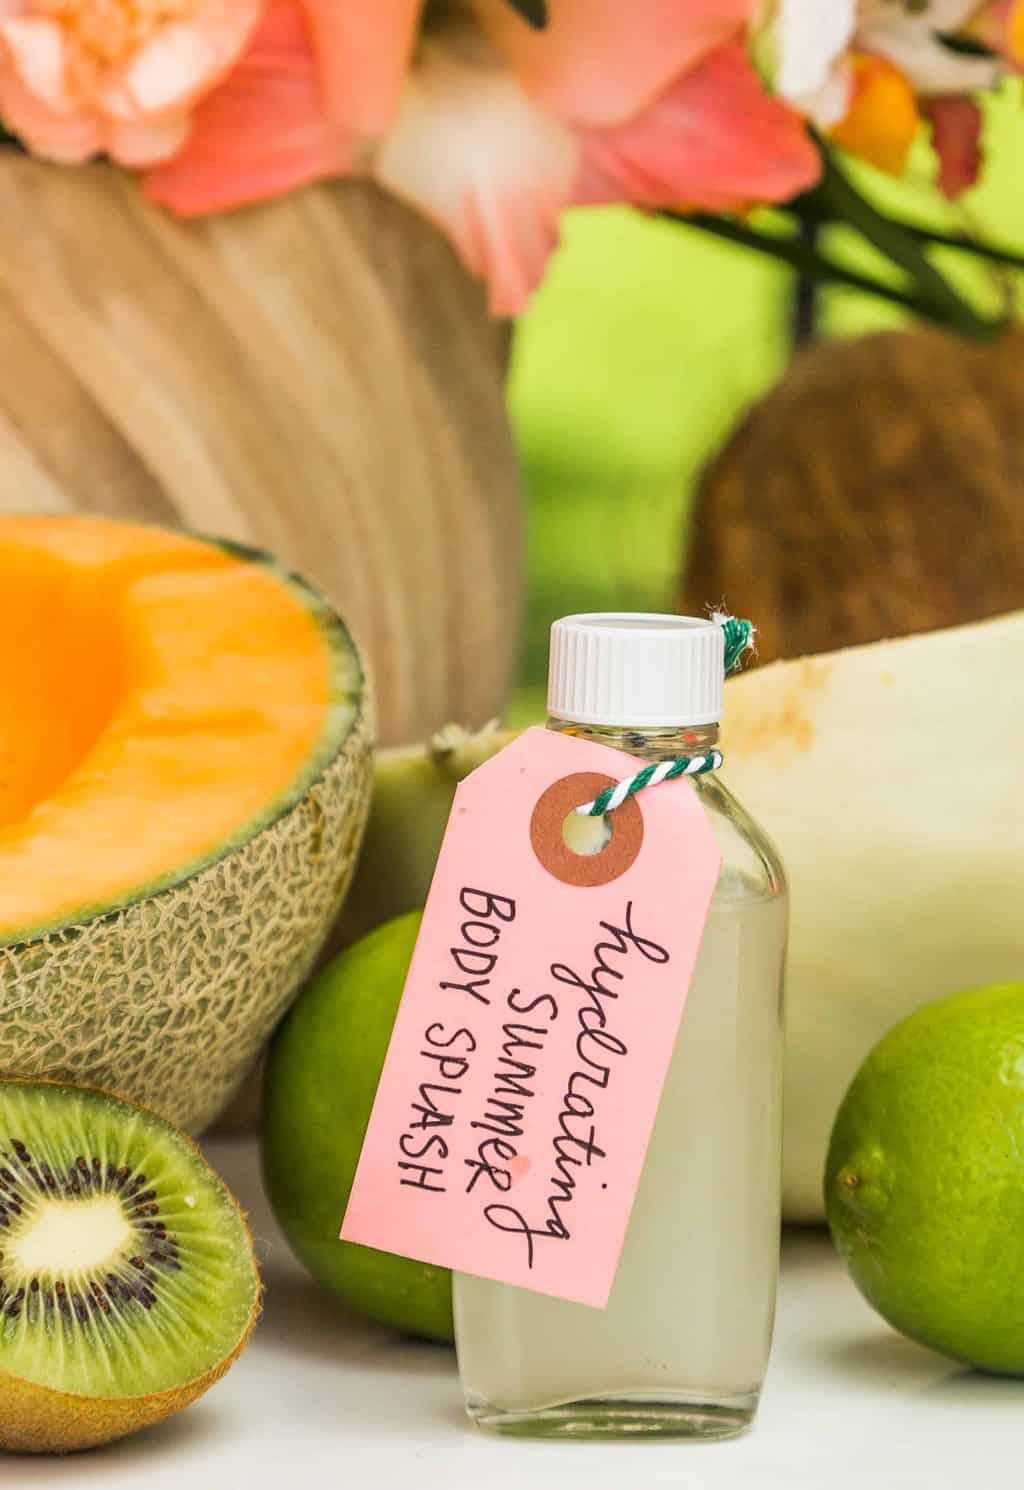 Cool Down with this Hydrating Summer Body Splash